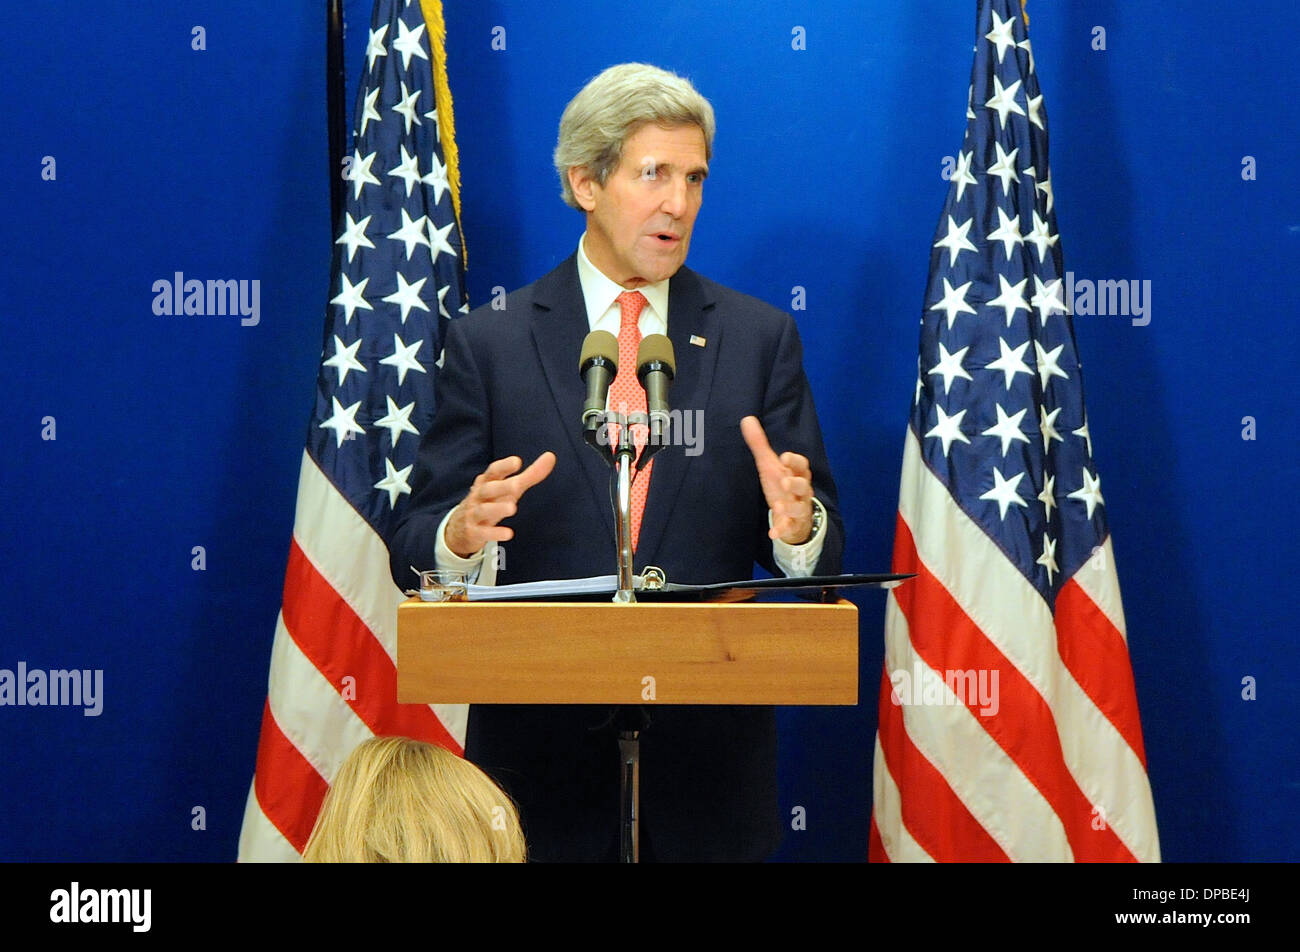 Secretary Kerry Discusses Middle East Peace Talks During News Conference - Stock Image